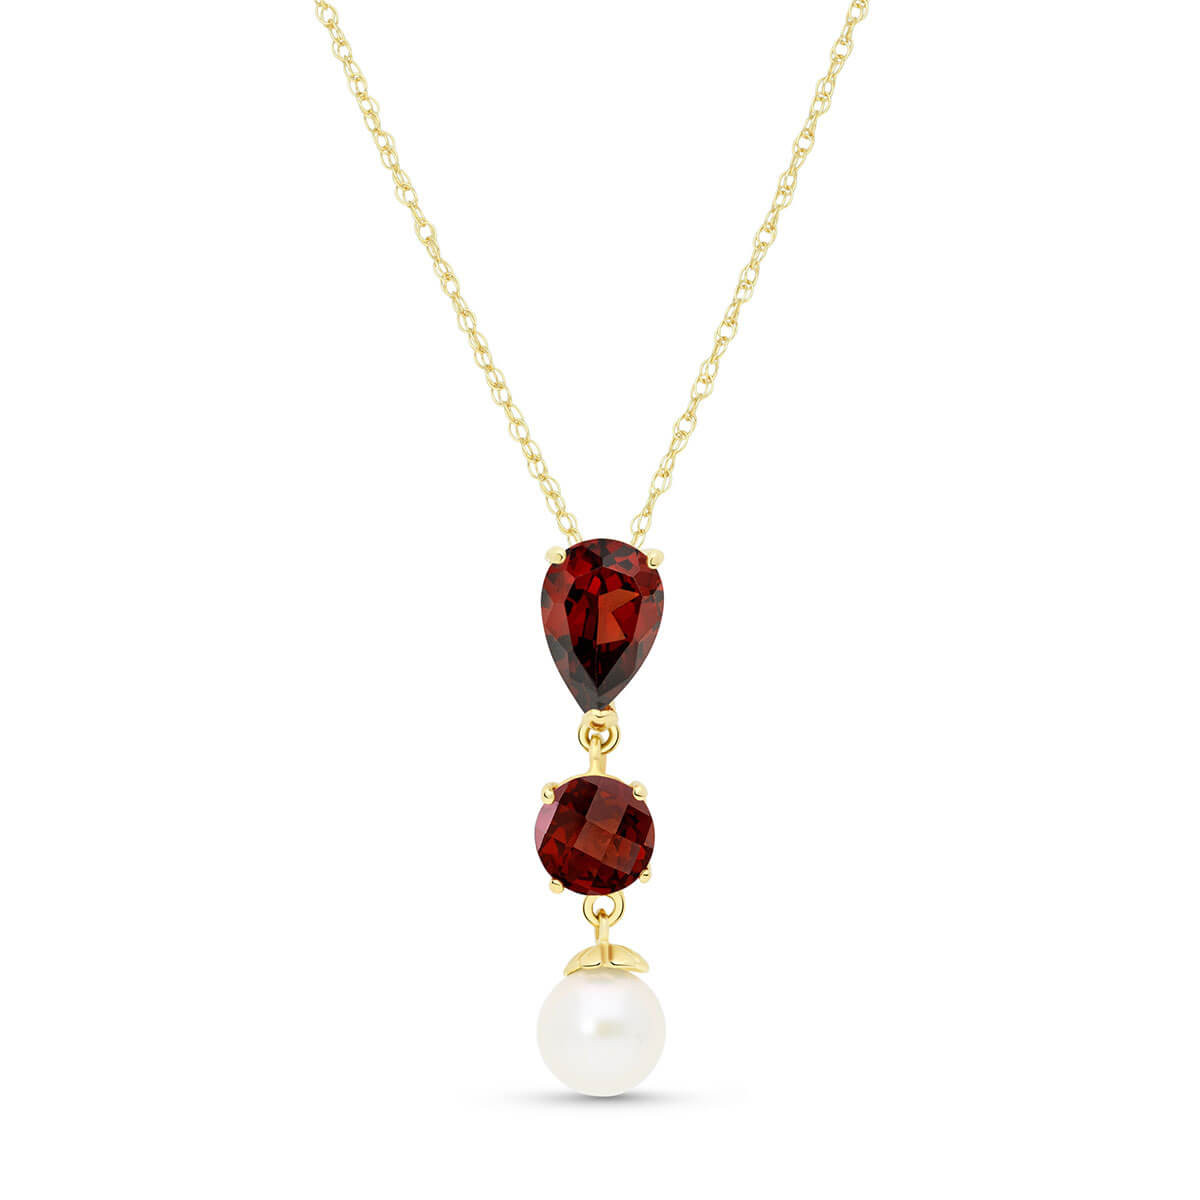 Garnet & Pearl Hourglass Pendant Necklace in 9ct Gold